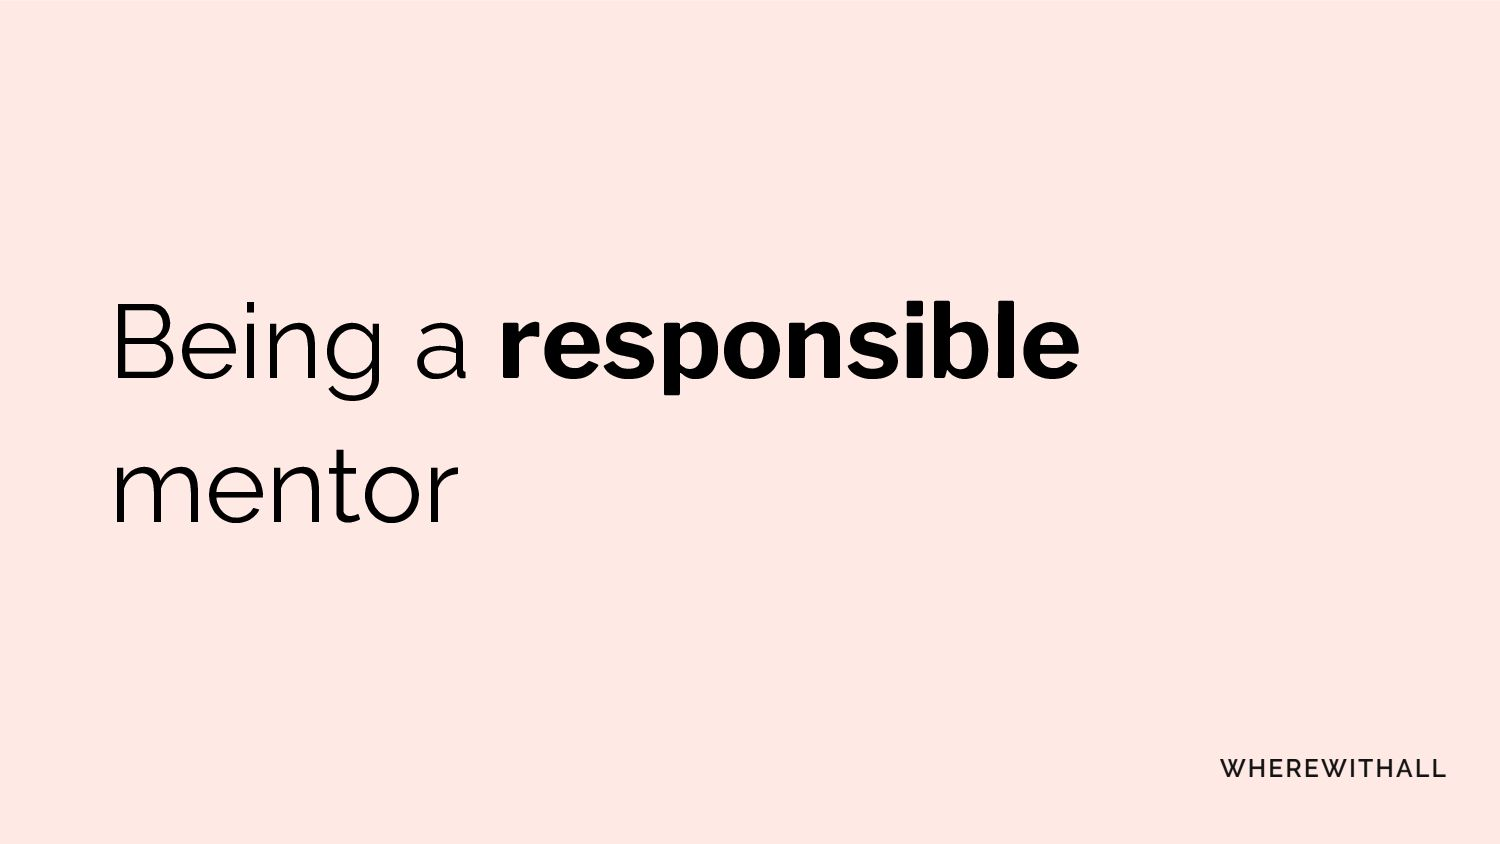 Being a responsible mentor